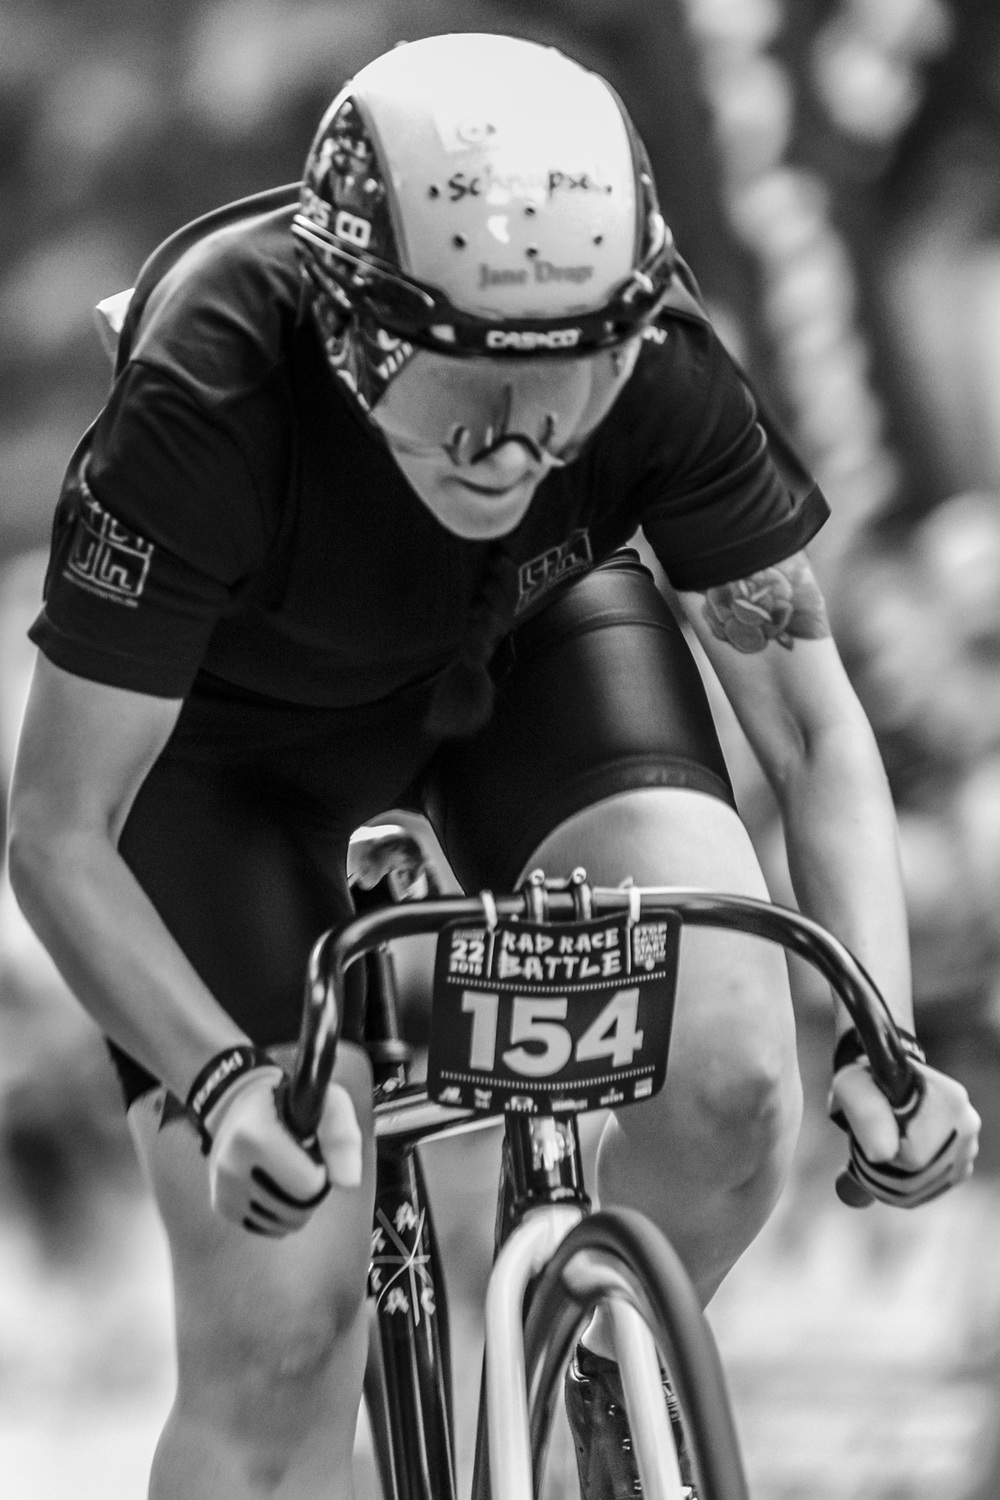 RAD RACE BATTLE - Cyclassics Hamburg 2015 - Pic by René Mosler coolbananas.de_27.jpg